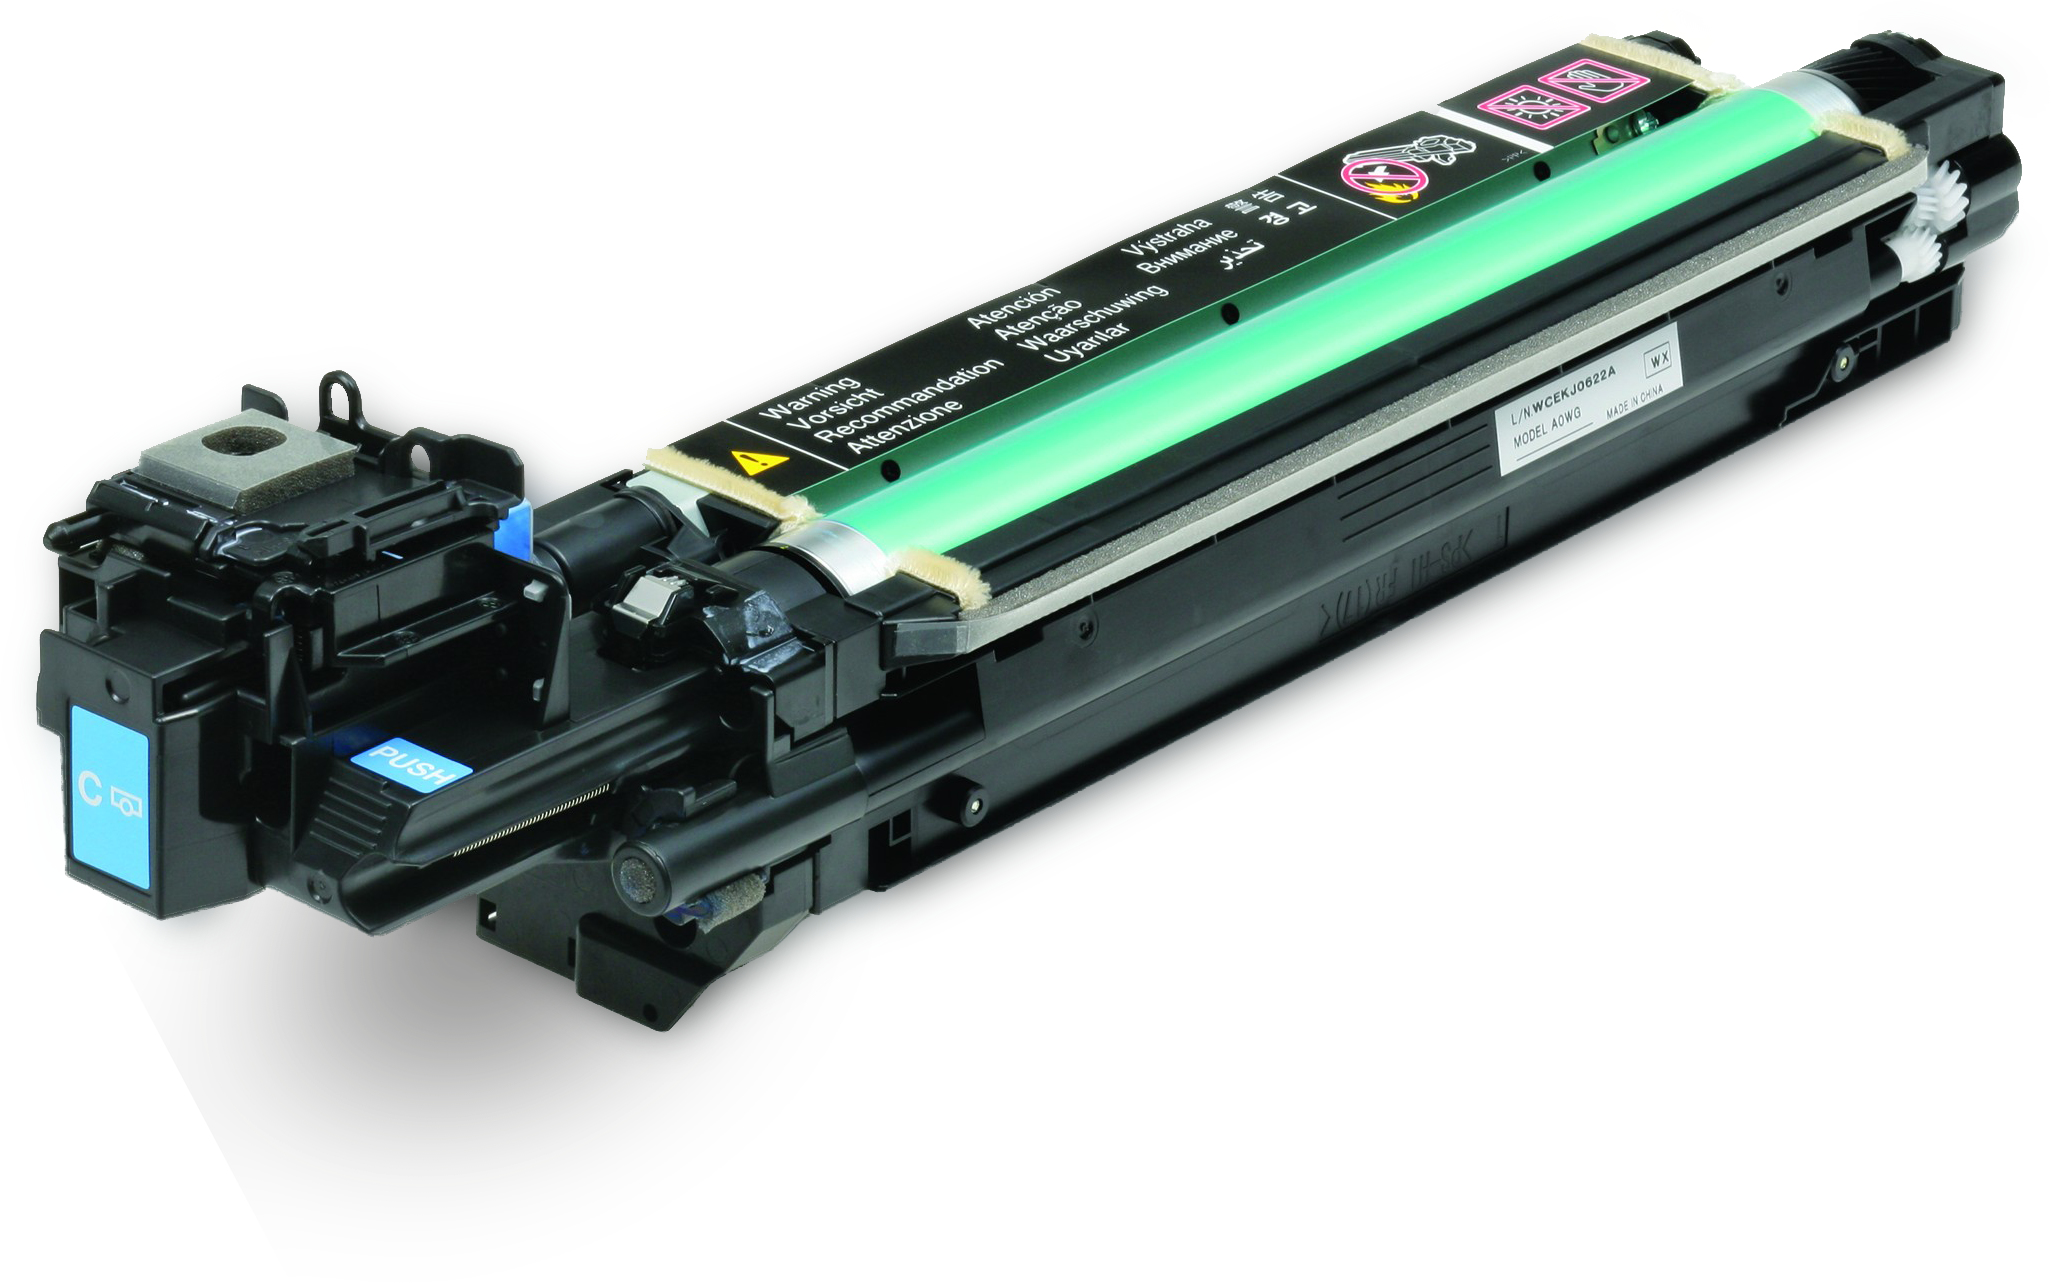 Reman Epson C13S051203 Cyan Photoconductor C13S051203 - rem01